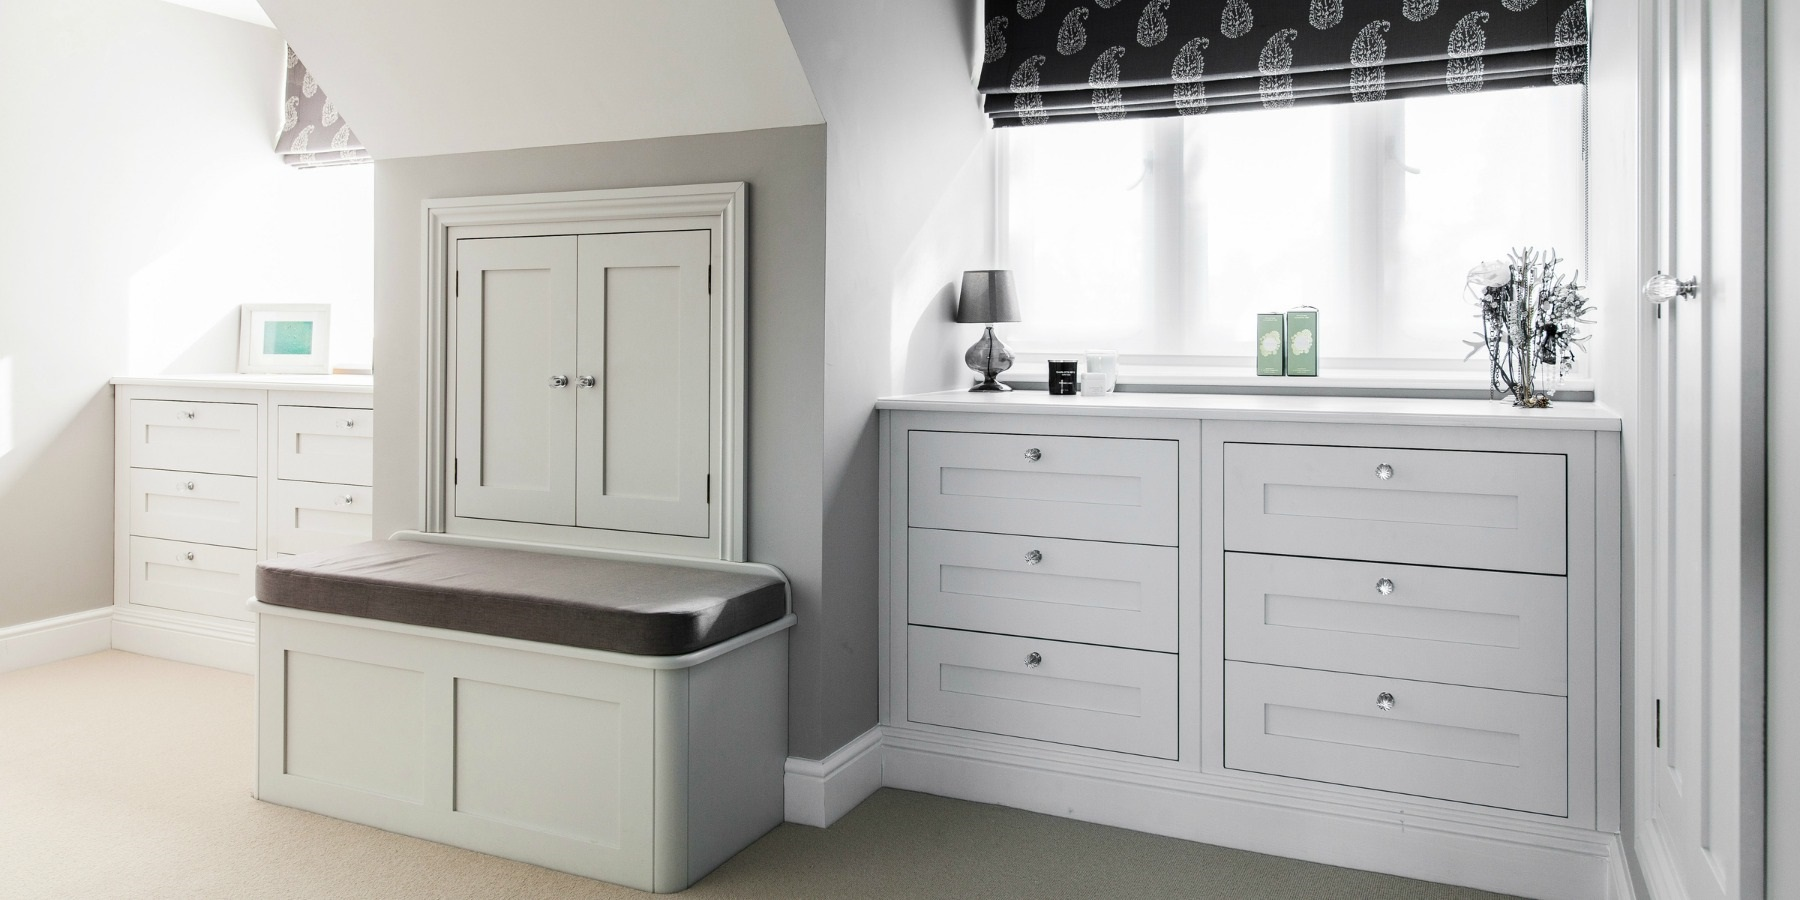 Bespoke His & Hers Bedroom Storage - Burlanes handmade chest of drawers and bedroom storage solutions.